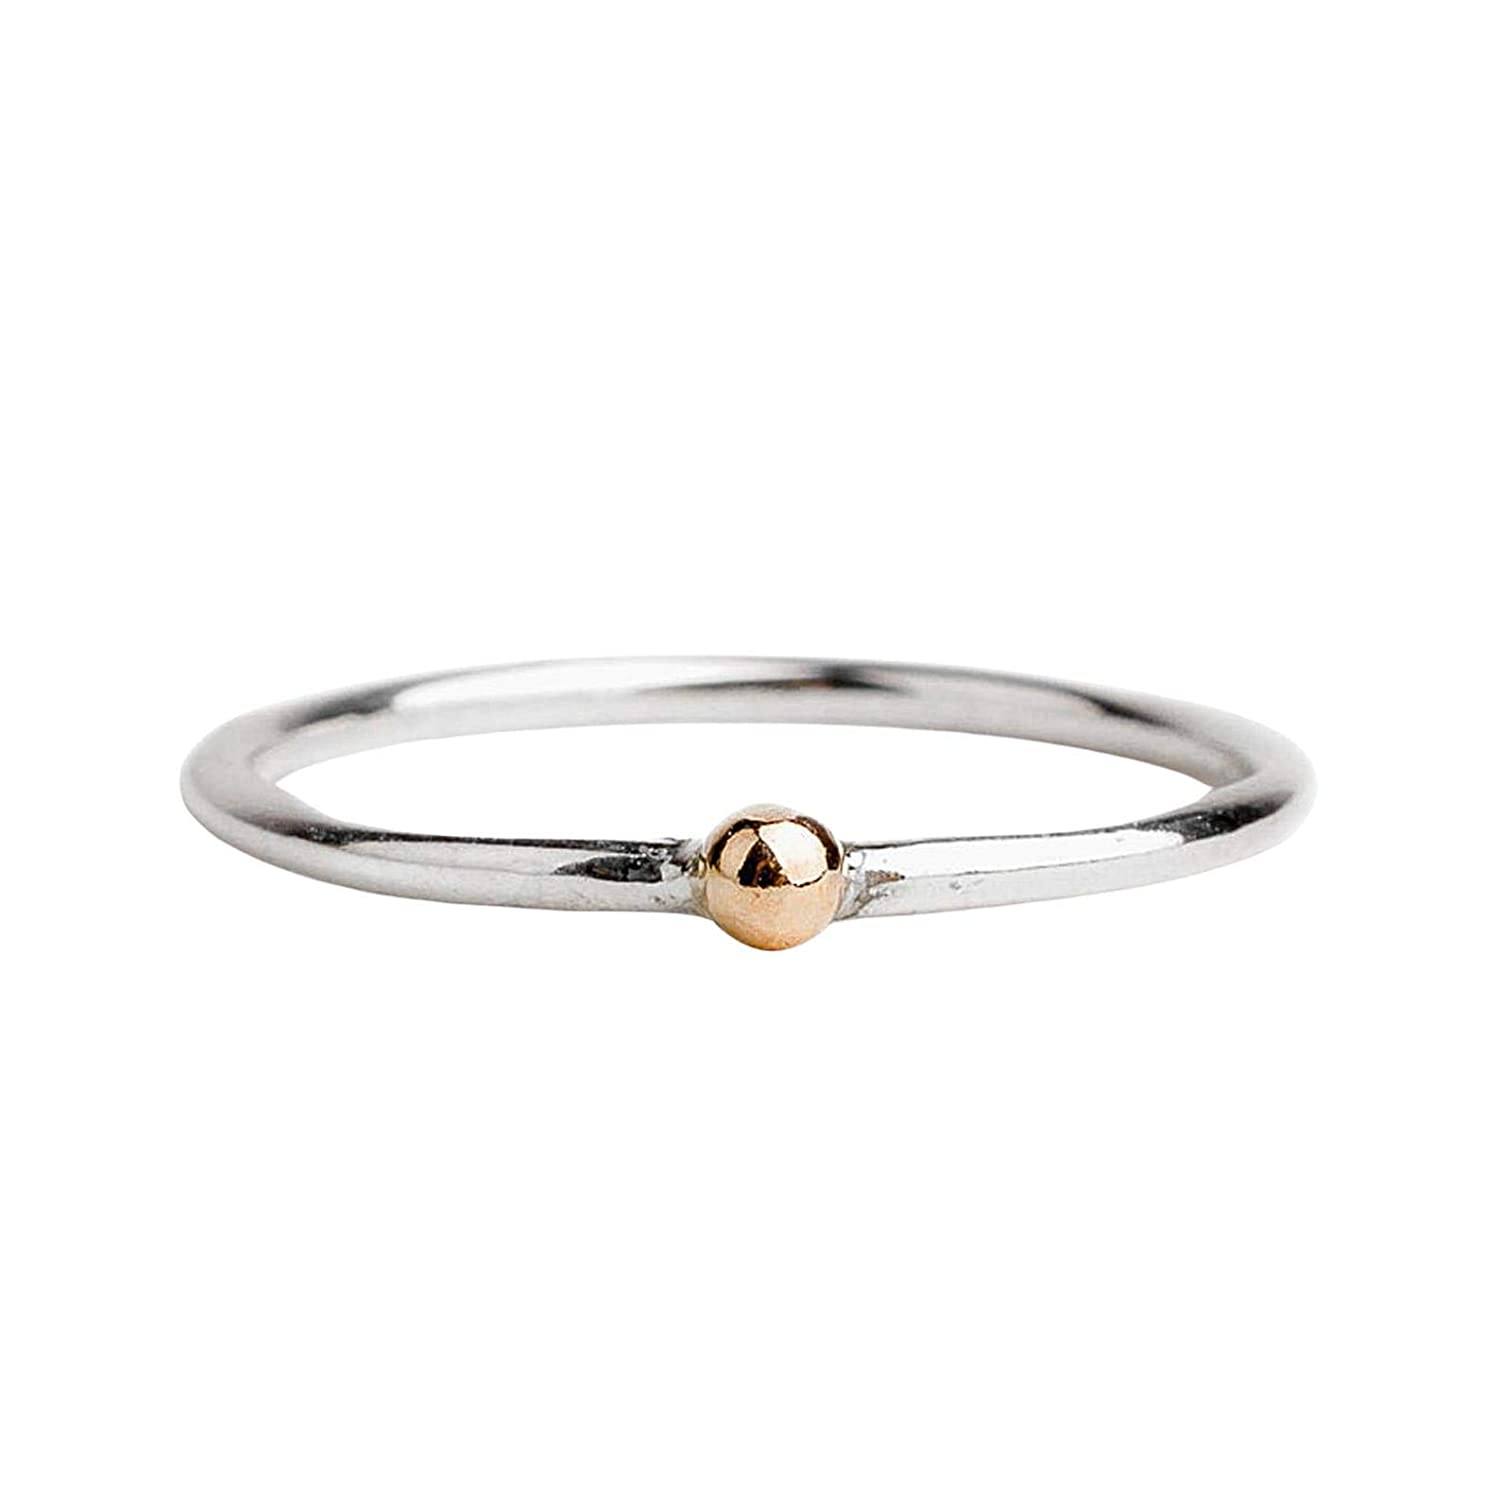 Custom Gold Dot Stackable Ring in Mixed Metal 14K Solid Yellow Gold and Sterling Silver